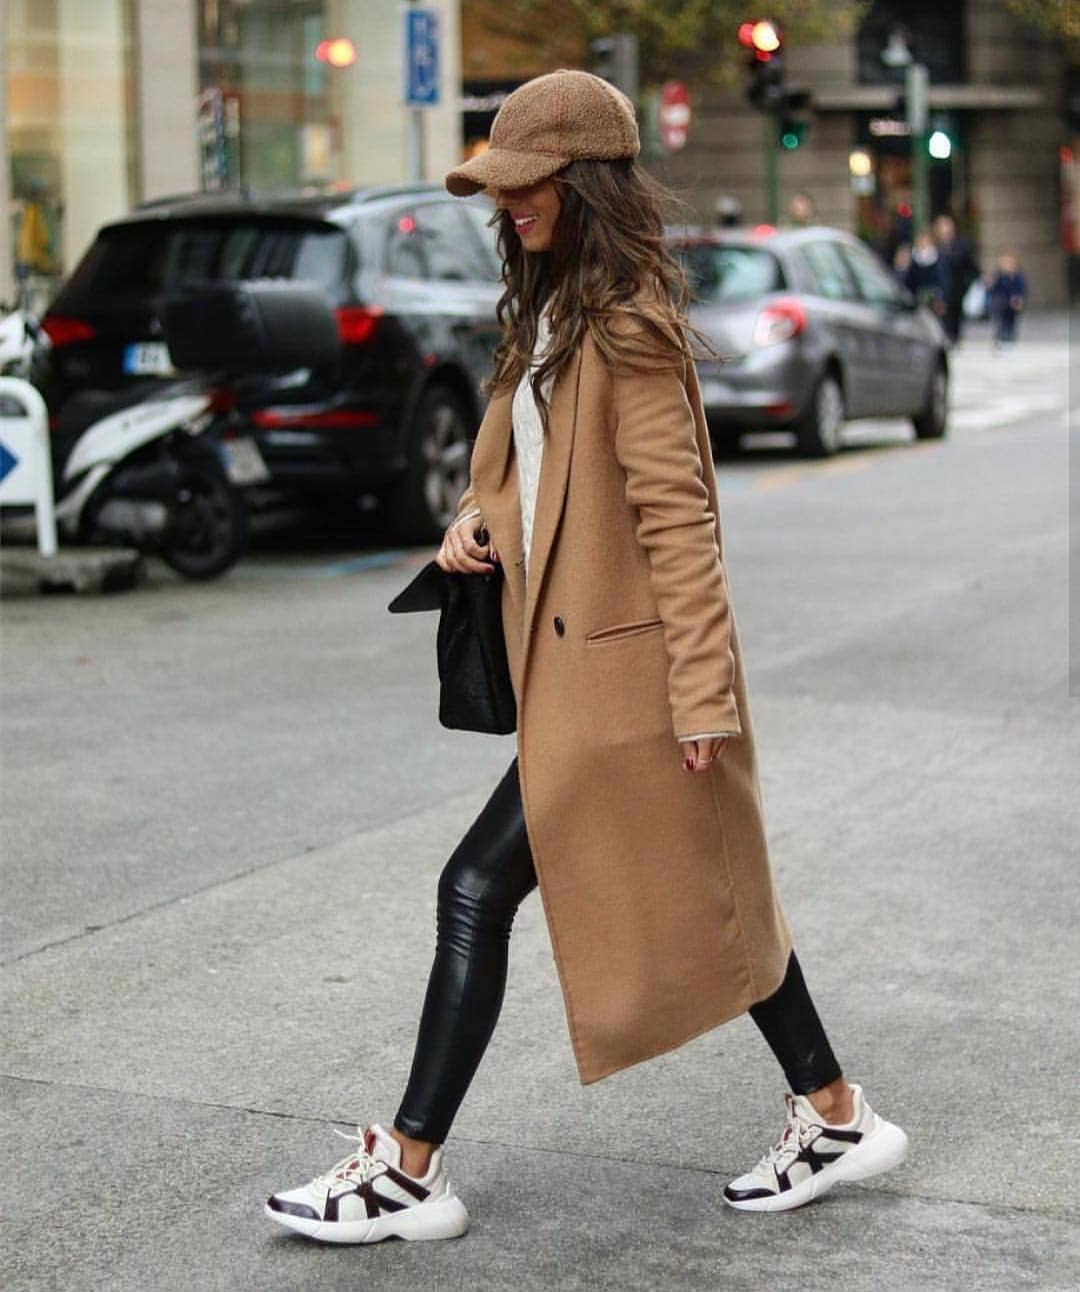 How To Wear Long Camel Coat With Chunky Sneakers This Fall 2020